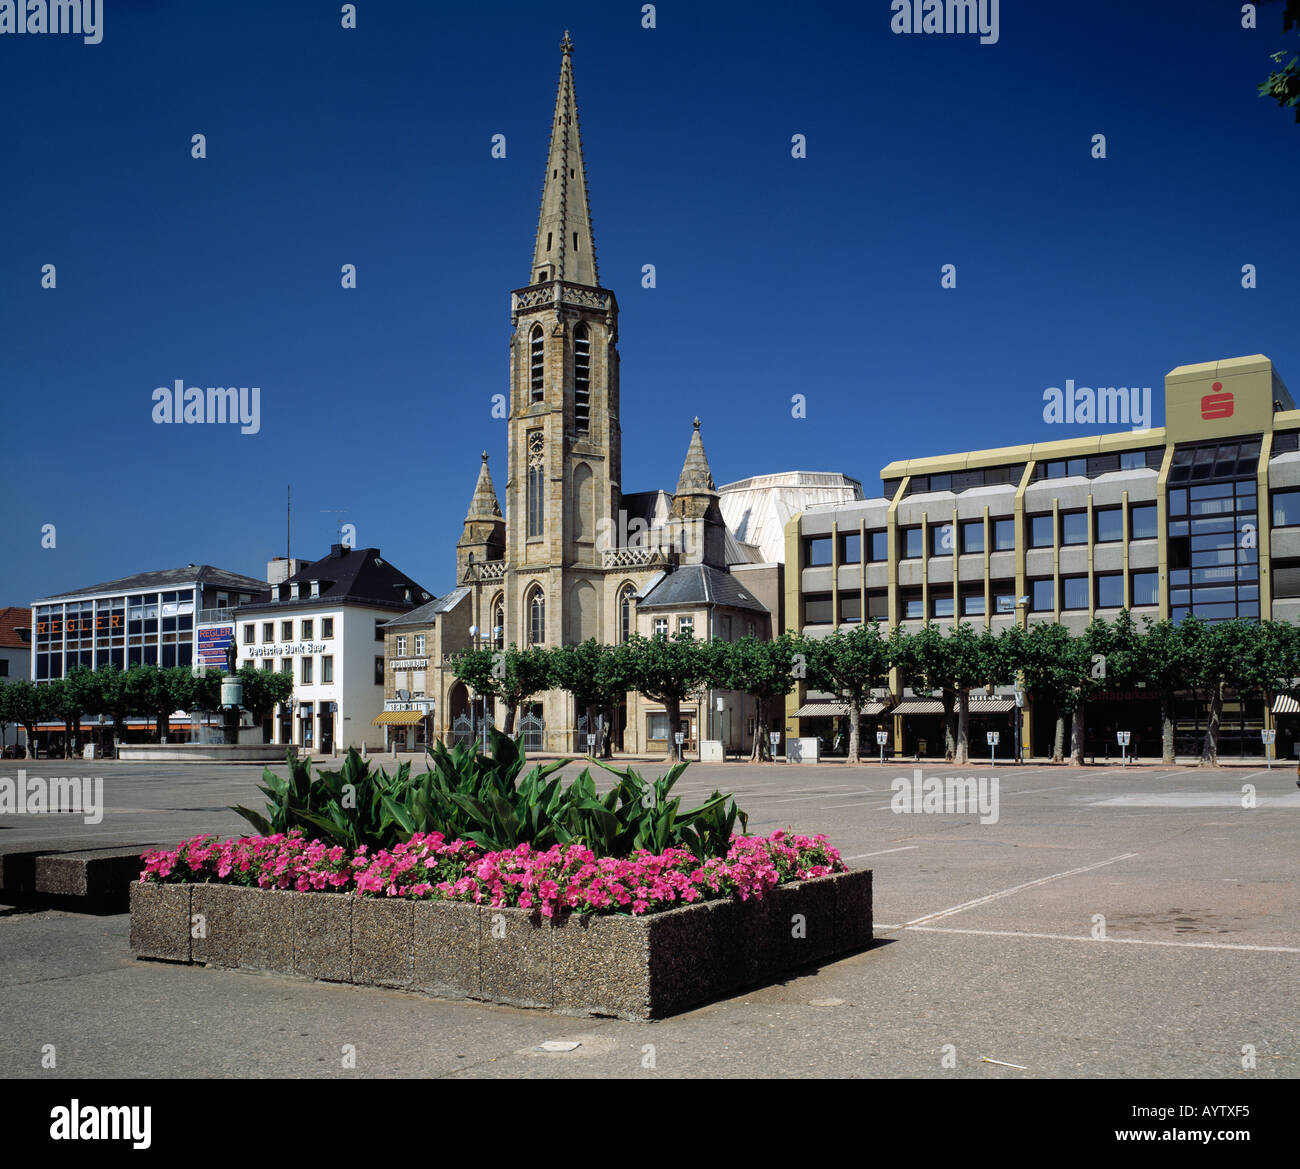 grosser markt mit ludwigskirche in saarlouis saar saarland stock photo 5610228 alamy. Black Bedroom Furniture Sets. Home Design Ideas